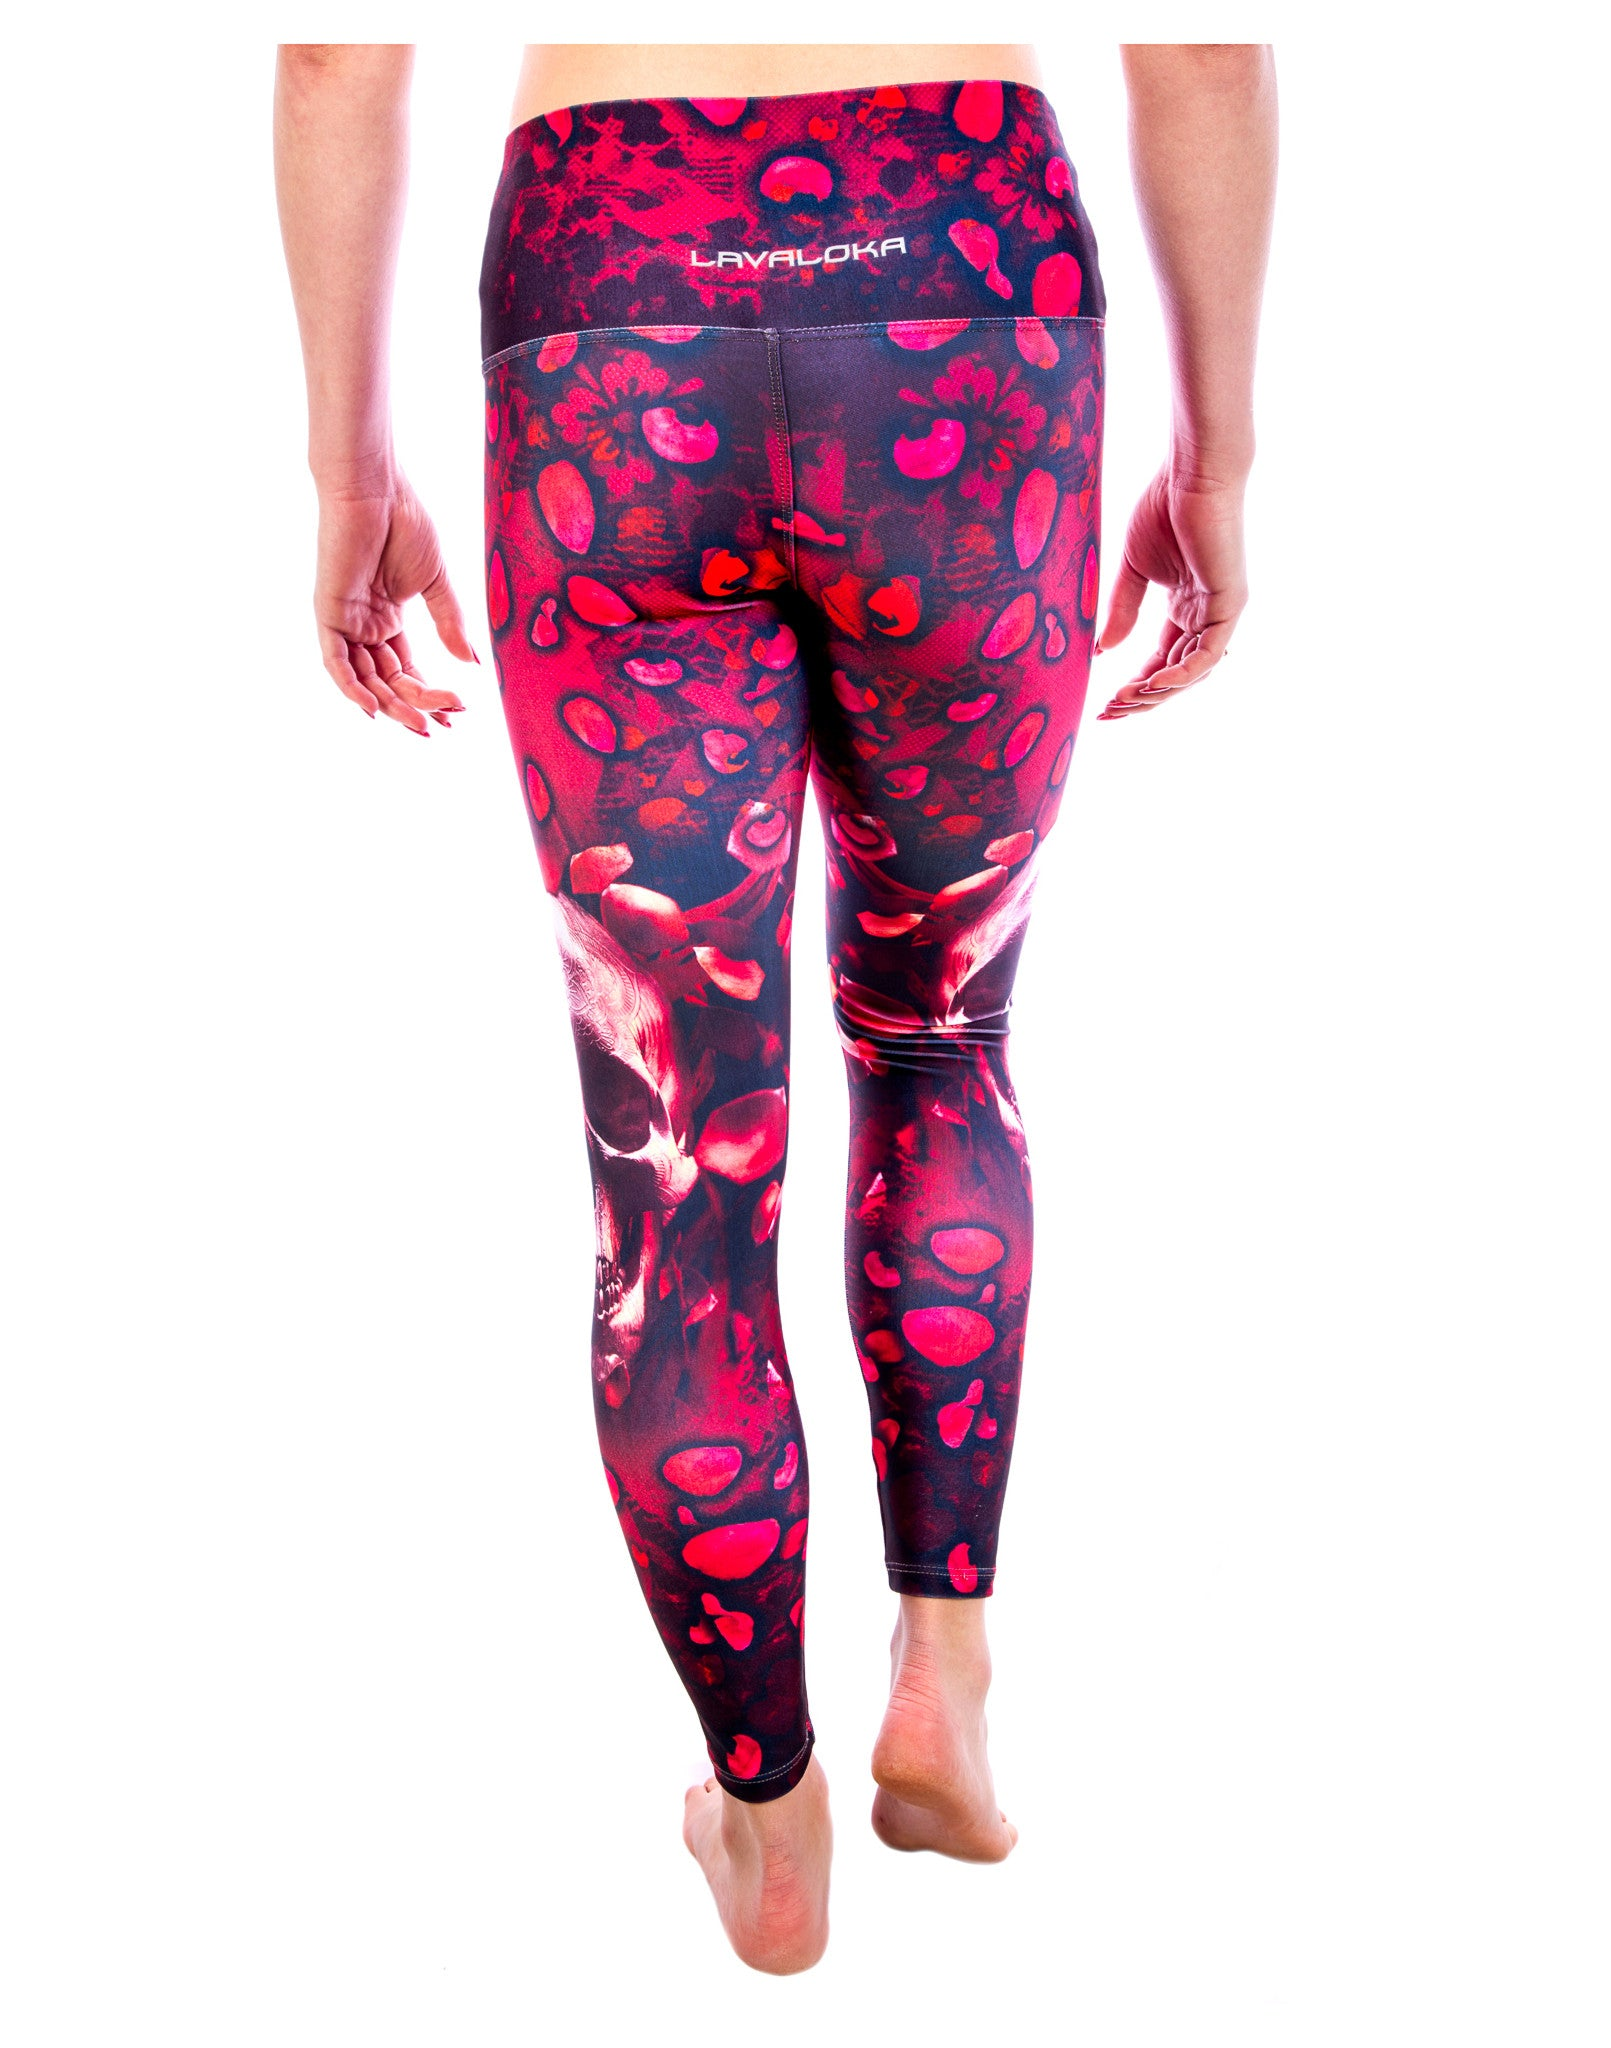 dd64f802ca ... Skull Yoga Pants - Red Hot Skull Swag Legging Collection by LavaLoka